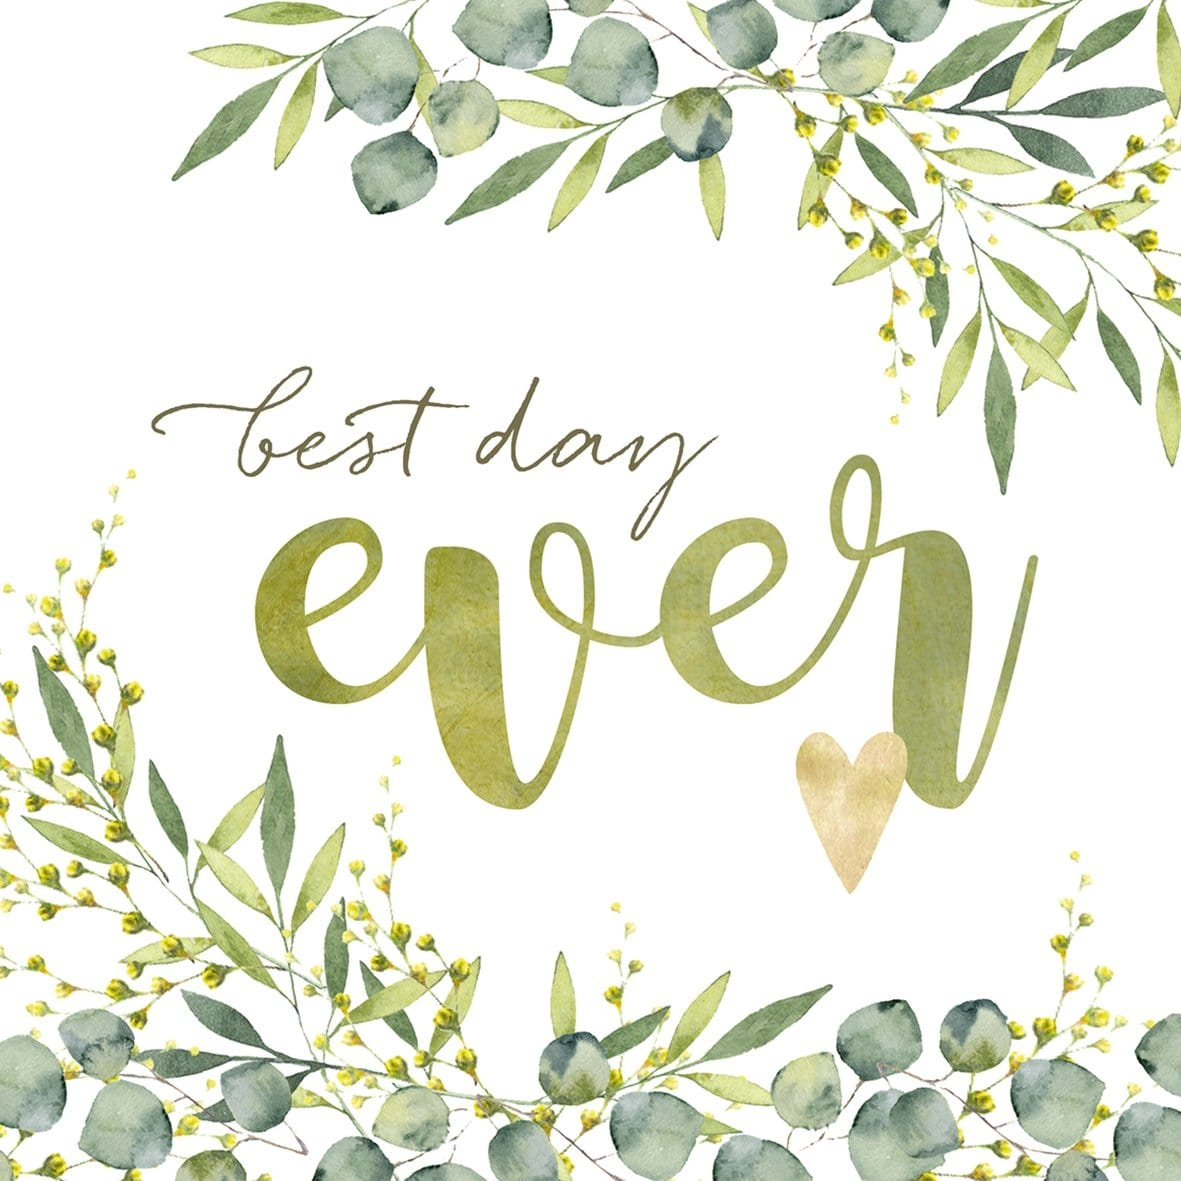 Serviette Eukalyptus best day ever  - Ja-Hochzeitsshop